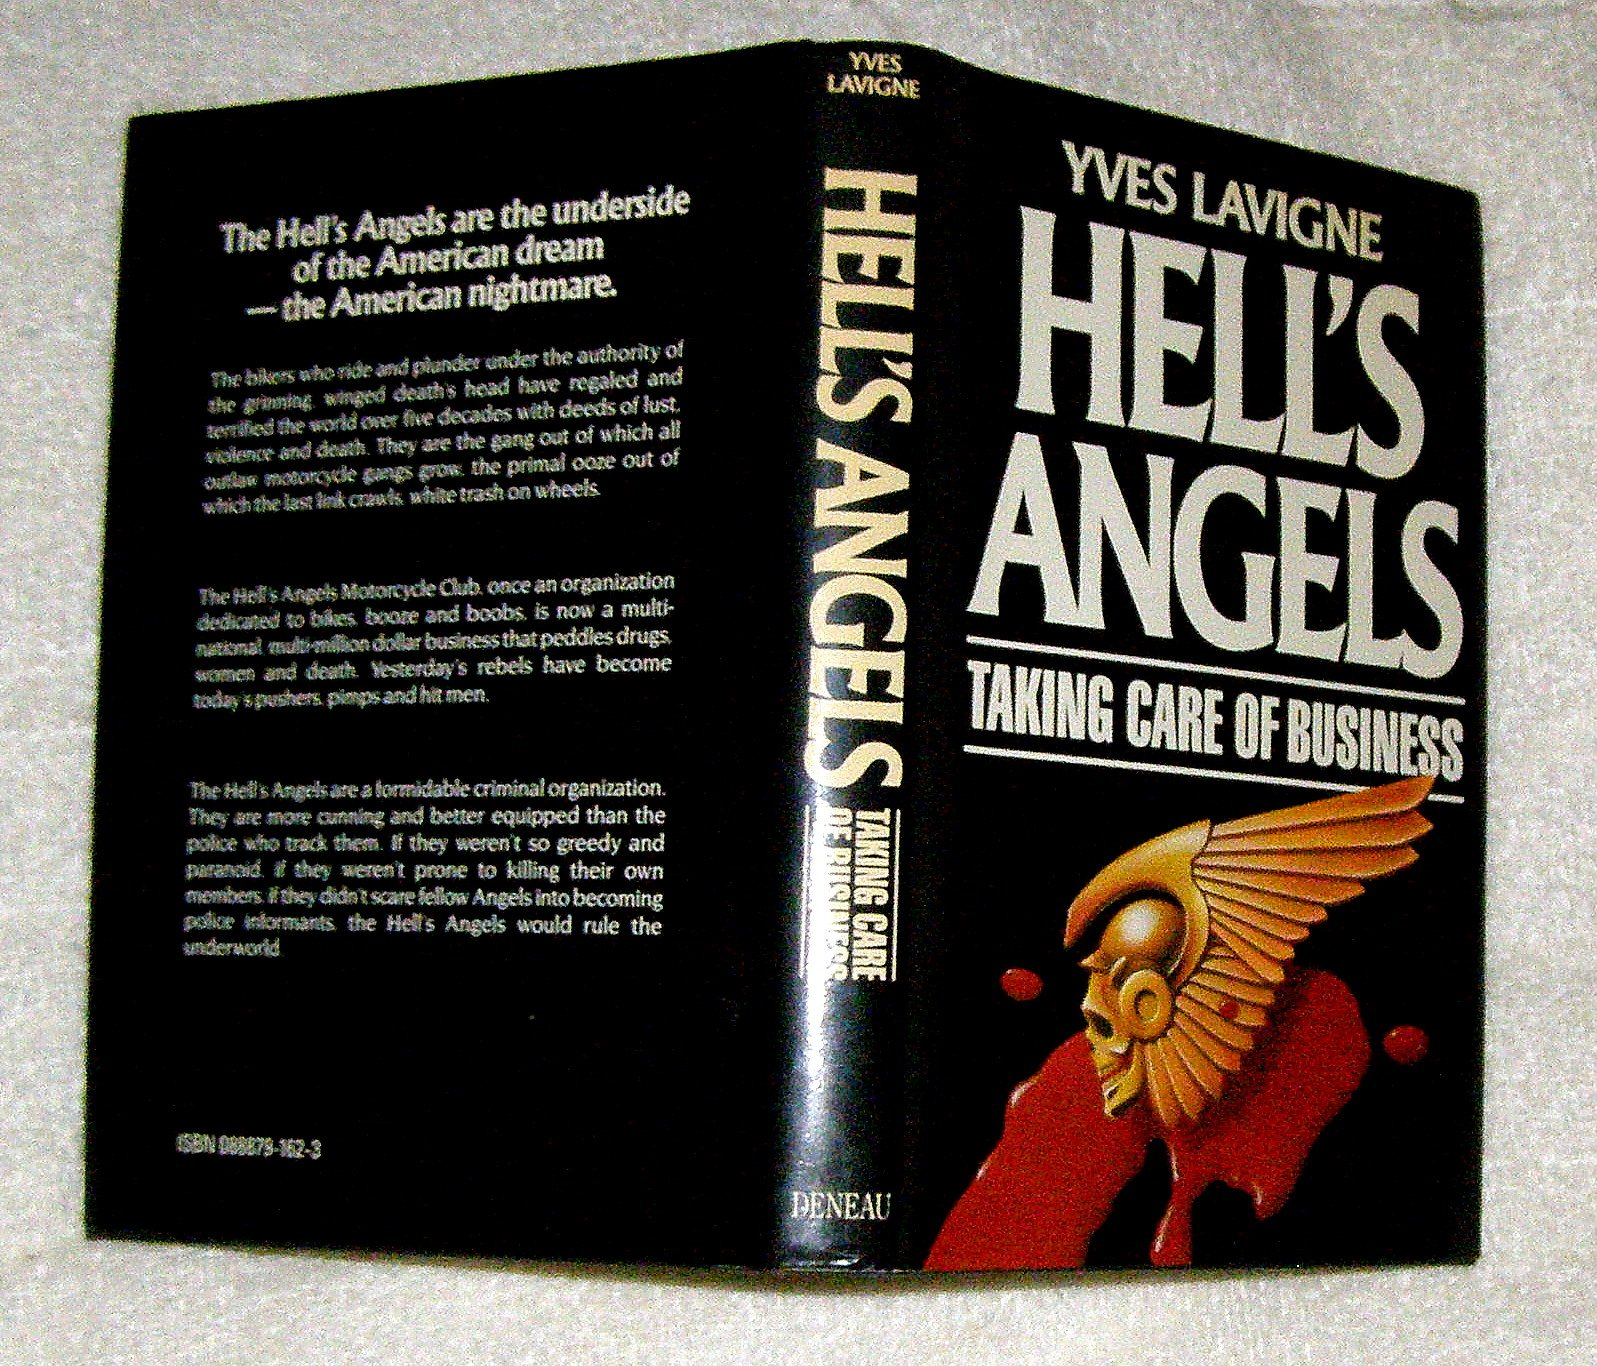 Hell's Angels: Taking care of business: Yves Lavigne: 9780888791627